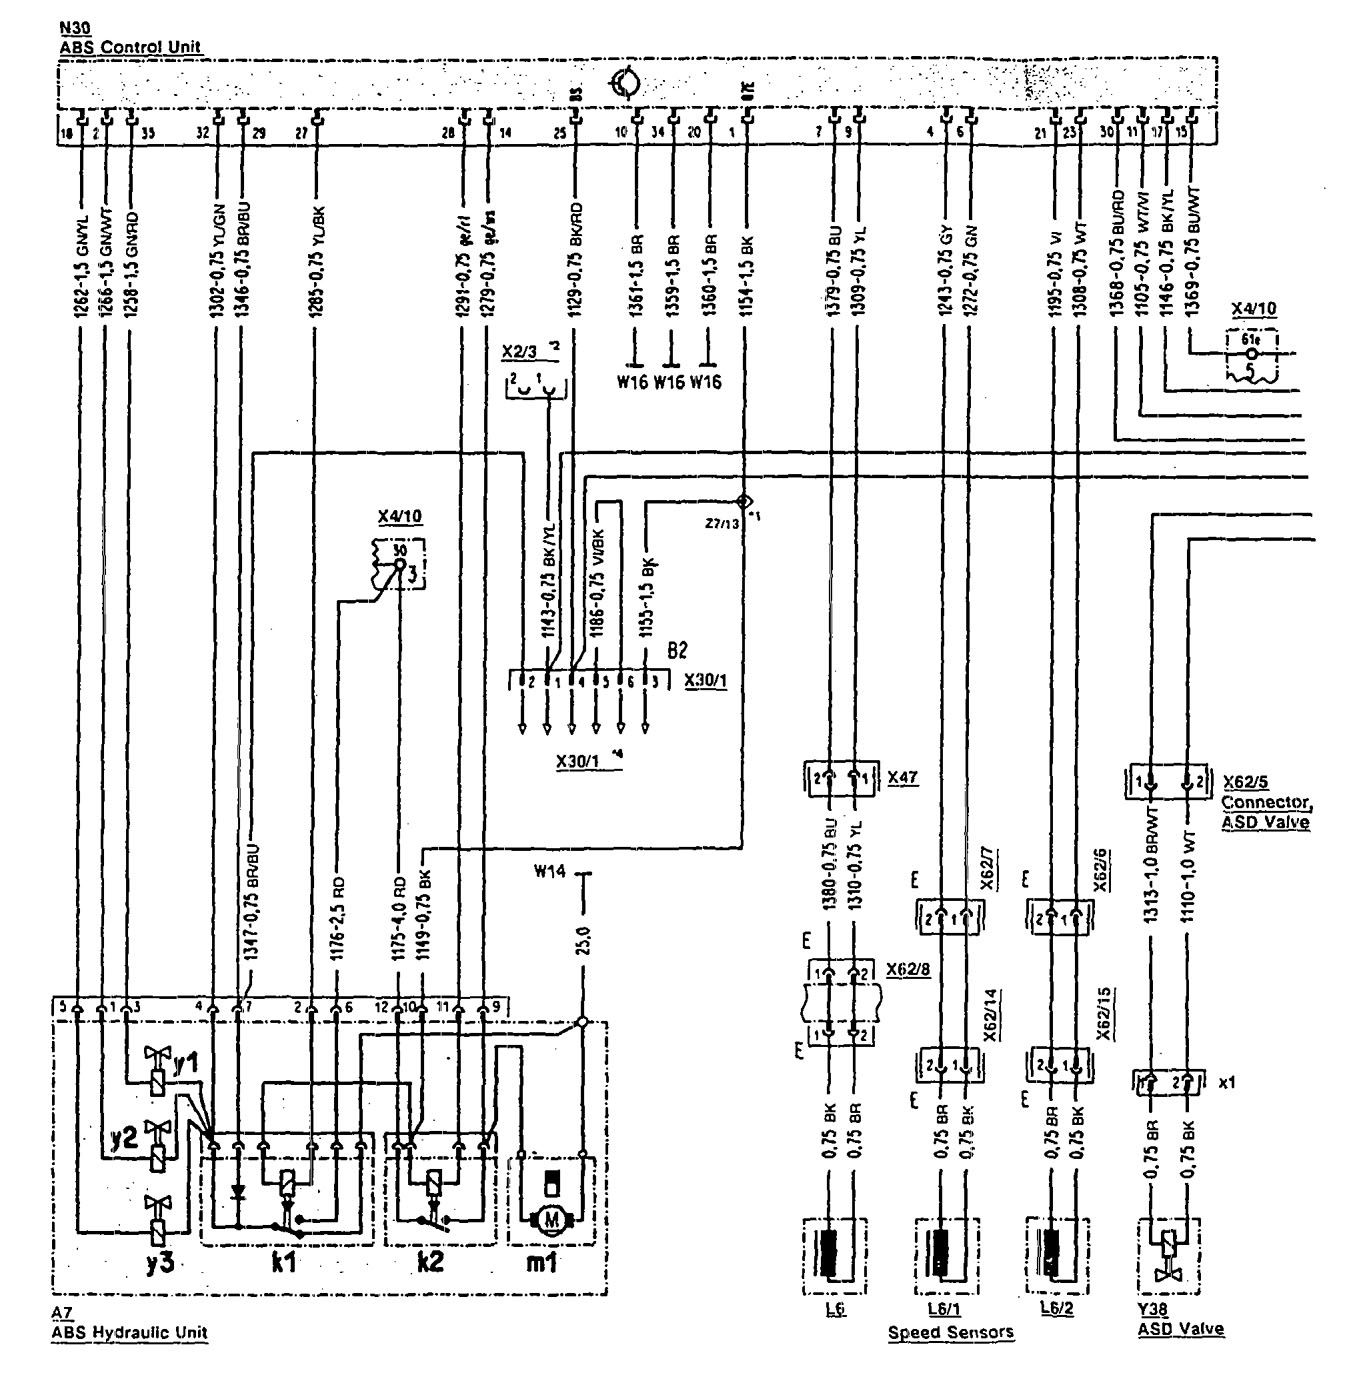 citroen c8 wiring diagram wiring diagram citroen c8 radio wiring diagram citroen c8 wiring diagram #7